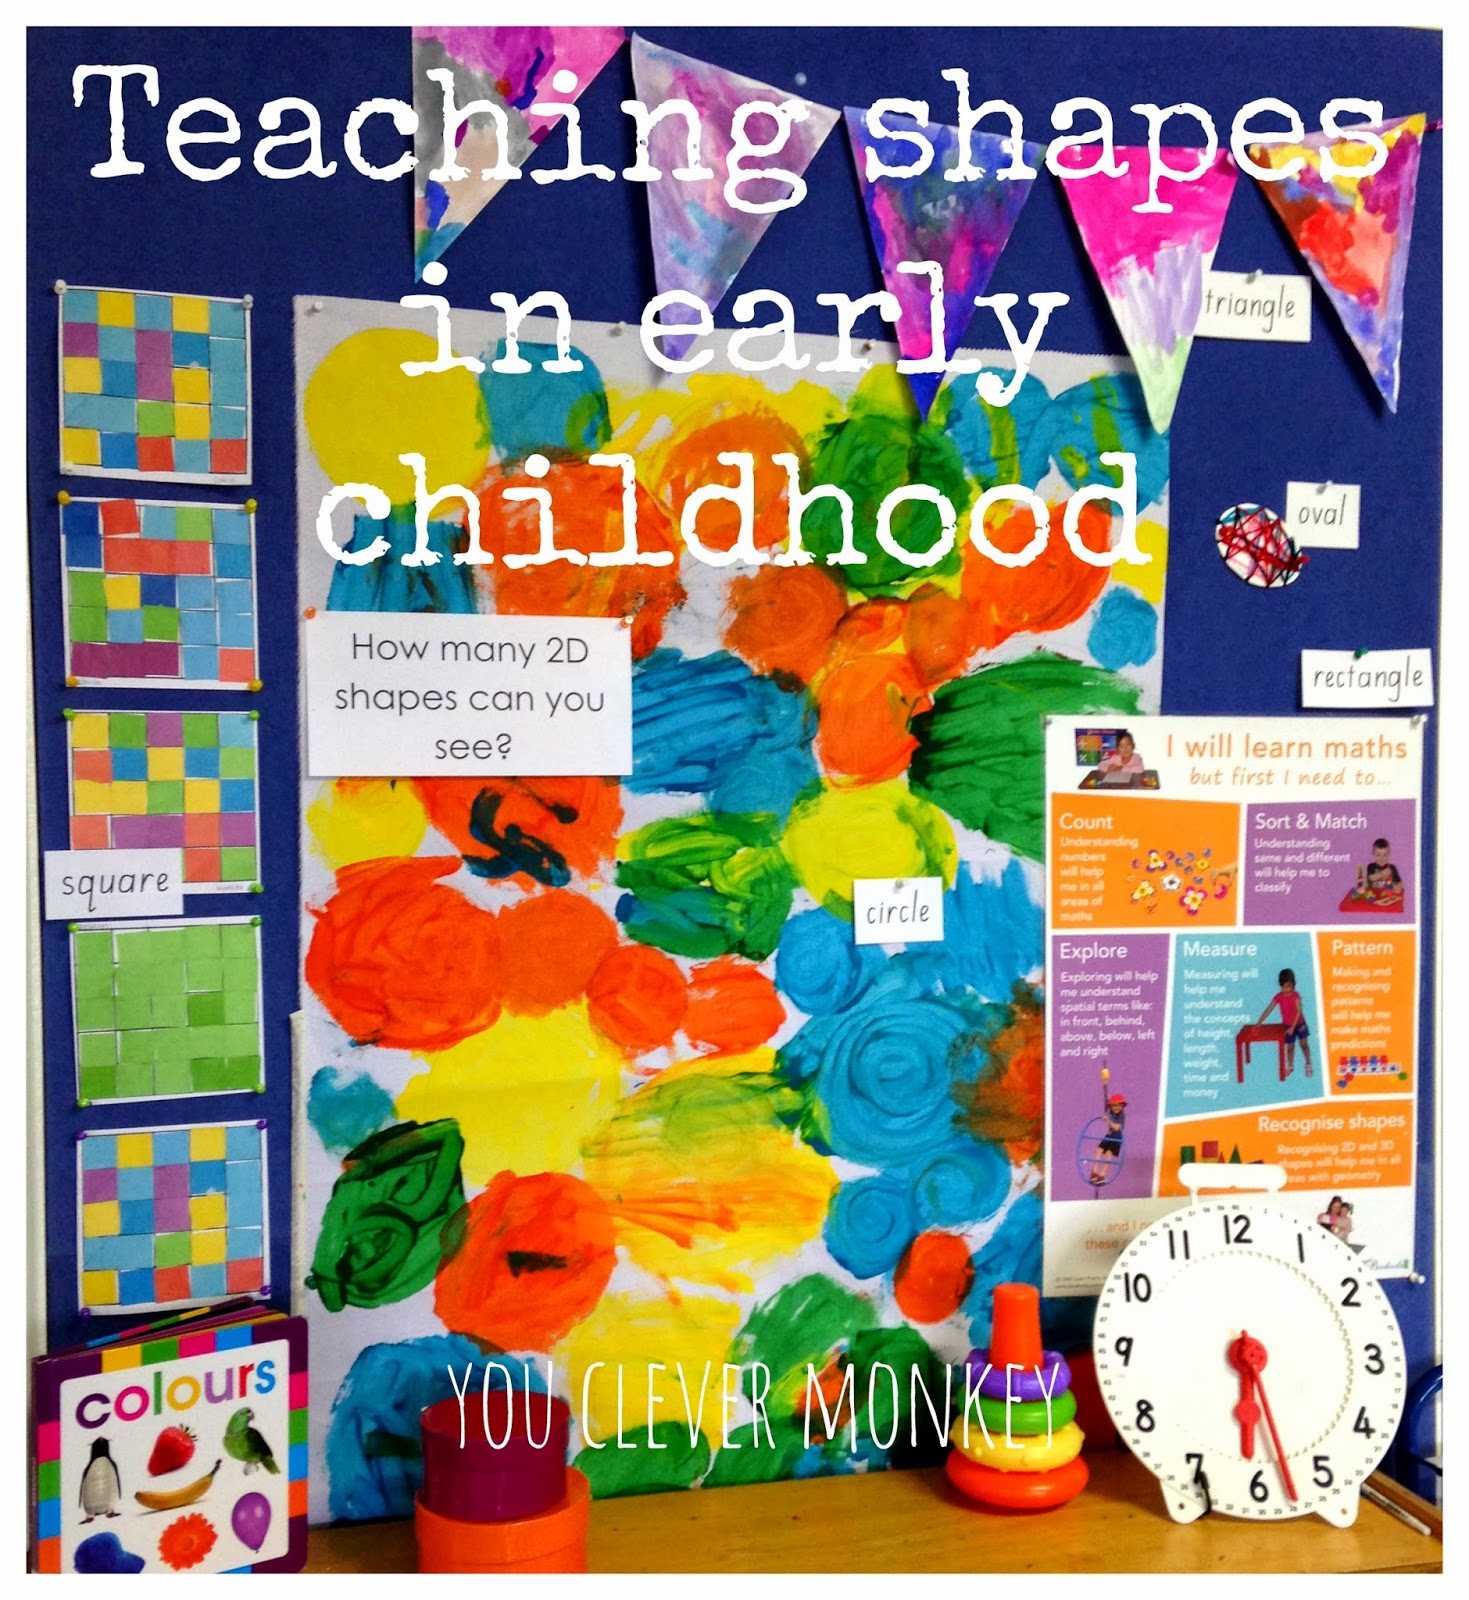 Teaching shapes in early childhood.  Are we teaching them the right way?  For teaching suggestions, visit http://youclevermonkey.com/